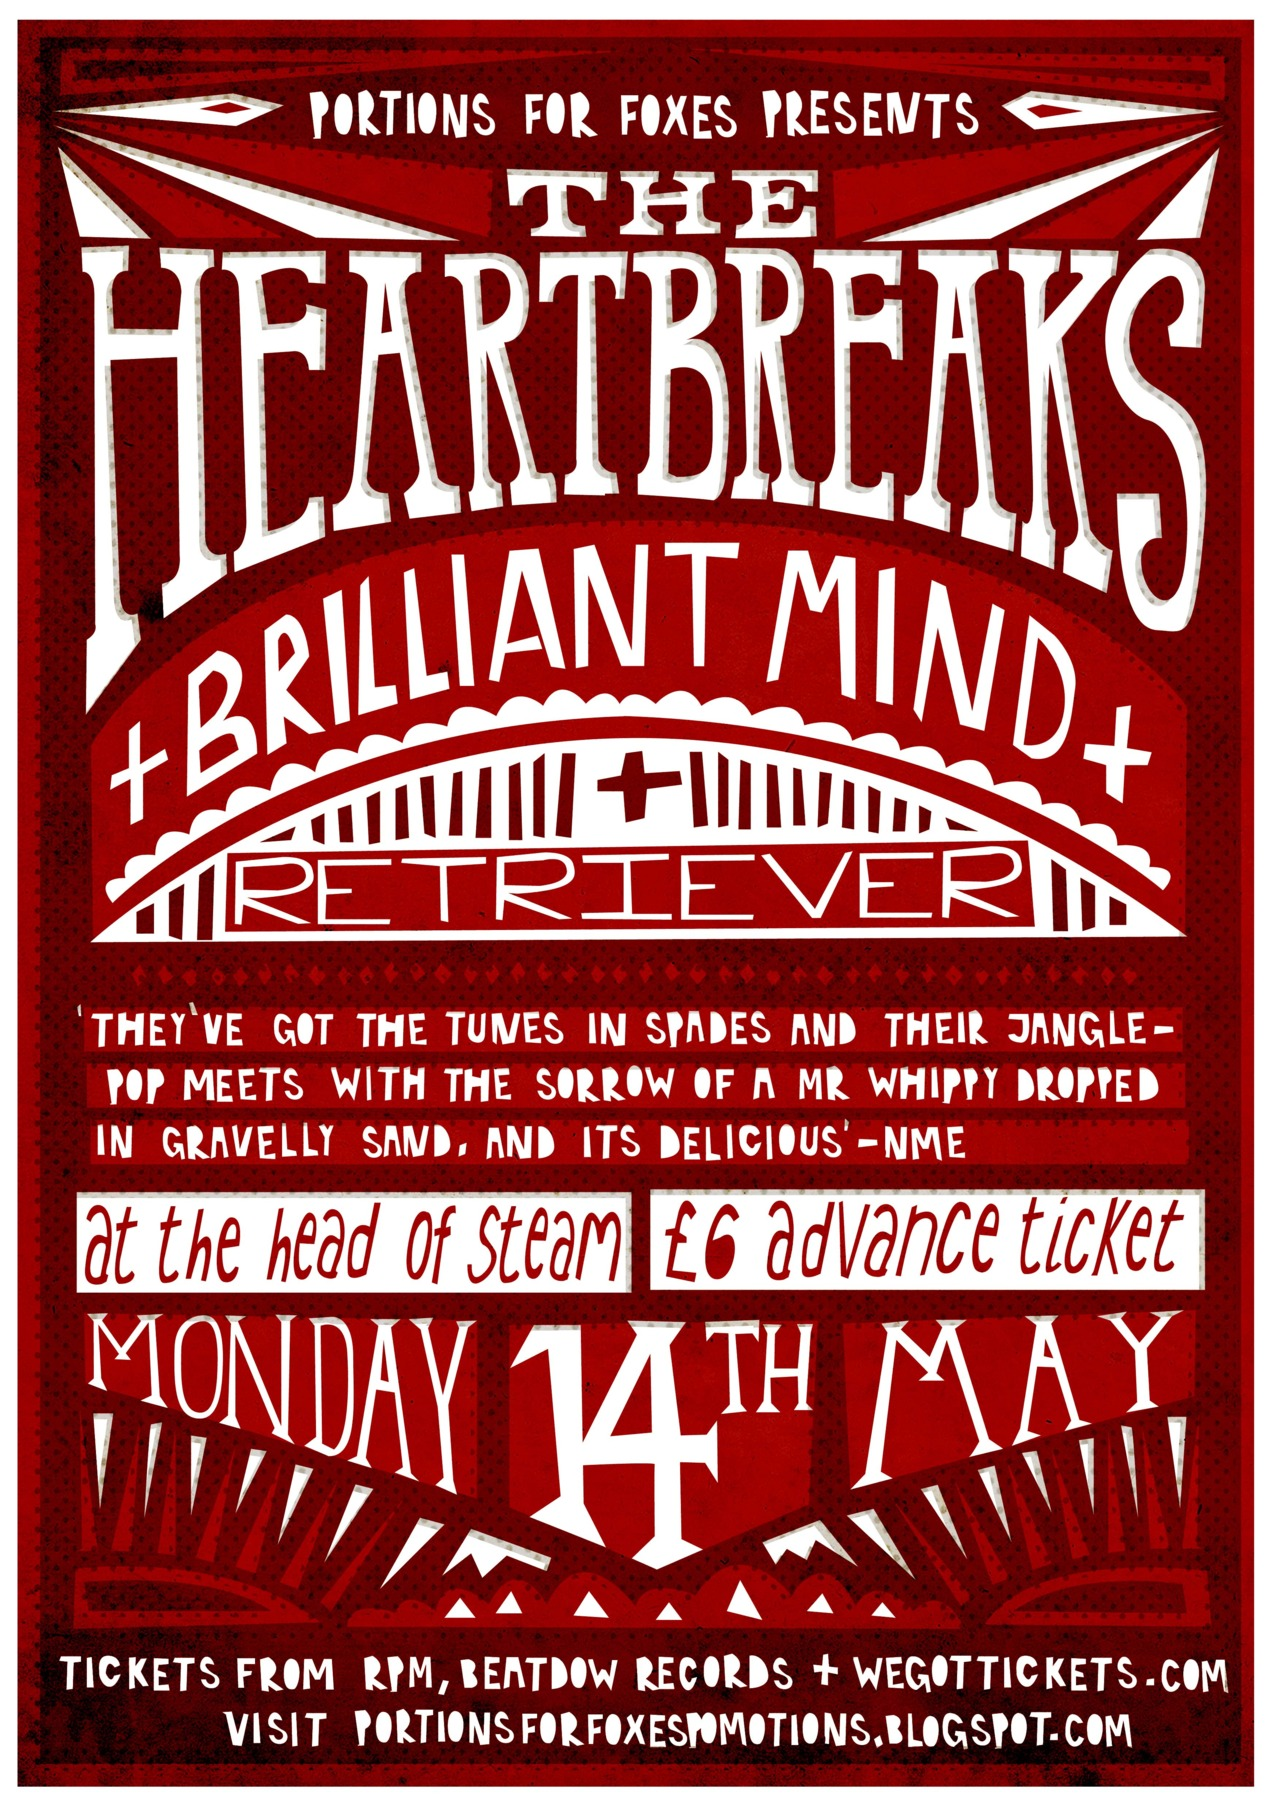 Here's a recent gig poster that I did for The Heartbreak's Newcastle show. You can find out more info  HERE